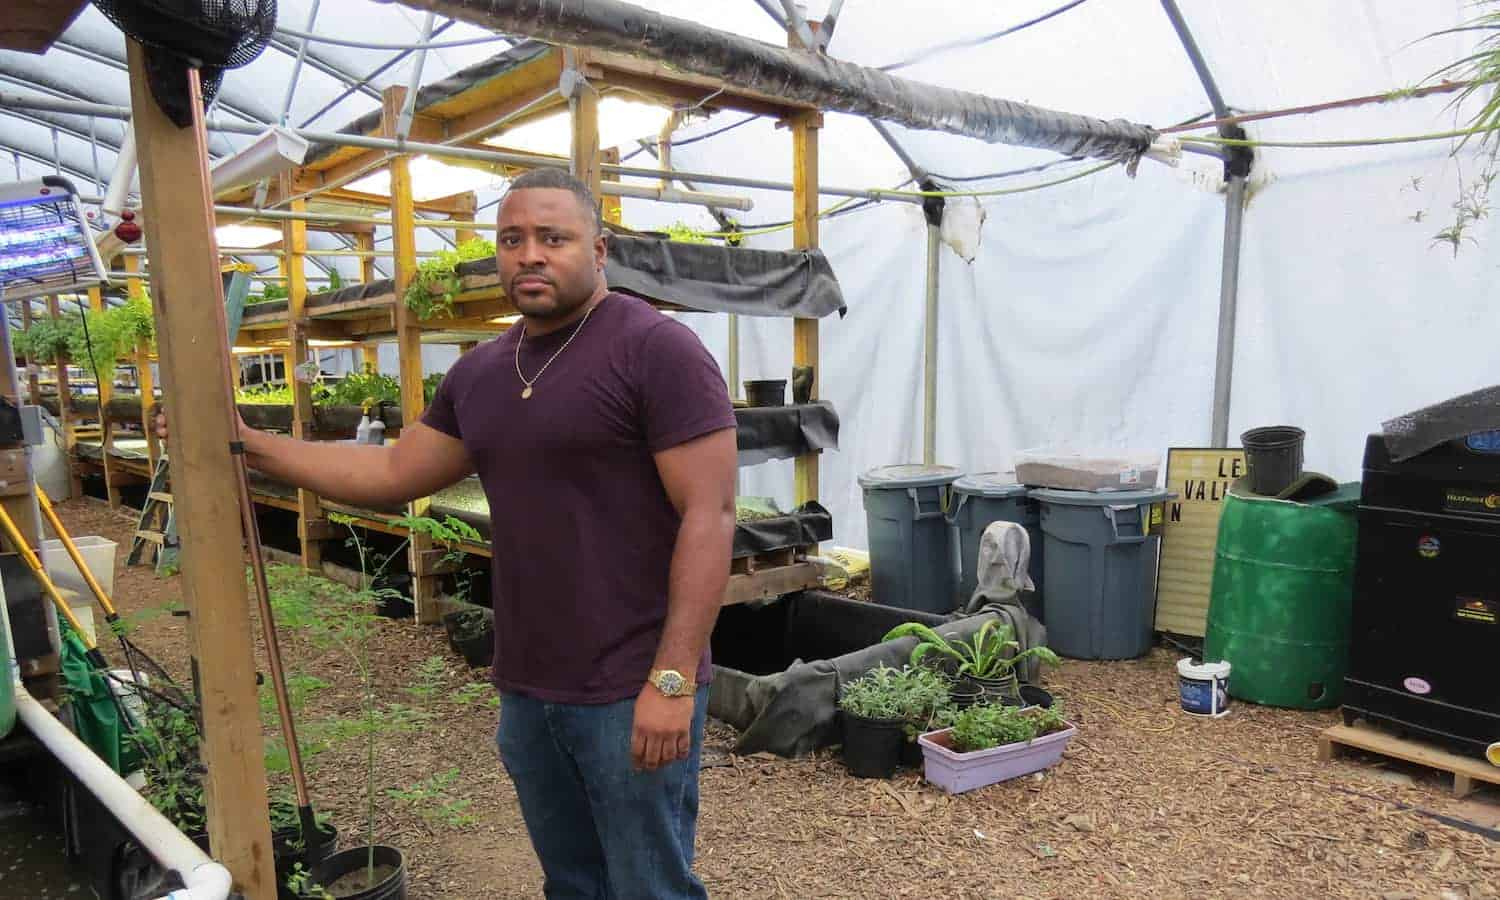 Nile Valley Aquaponics is unveiling new facilities and plans in the coming months, creating a community around food through aquaponics.